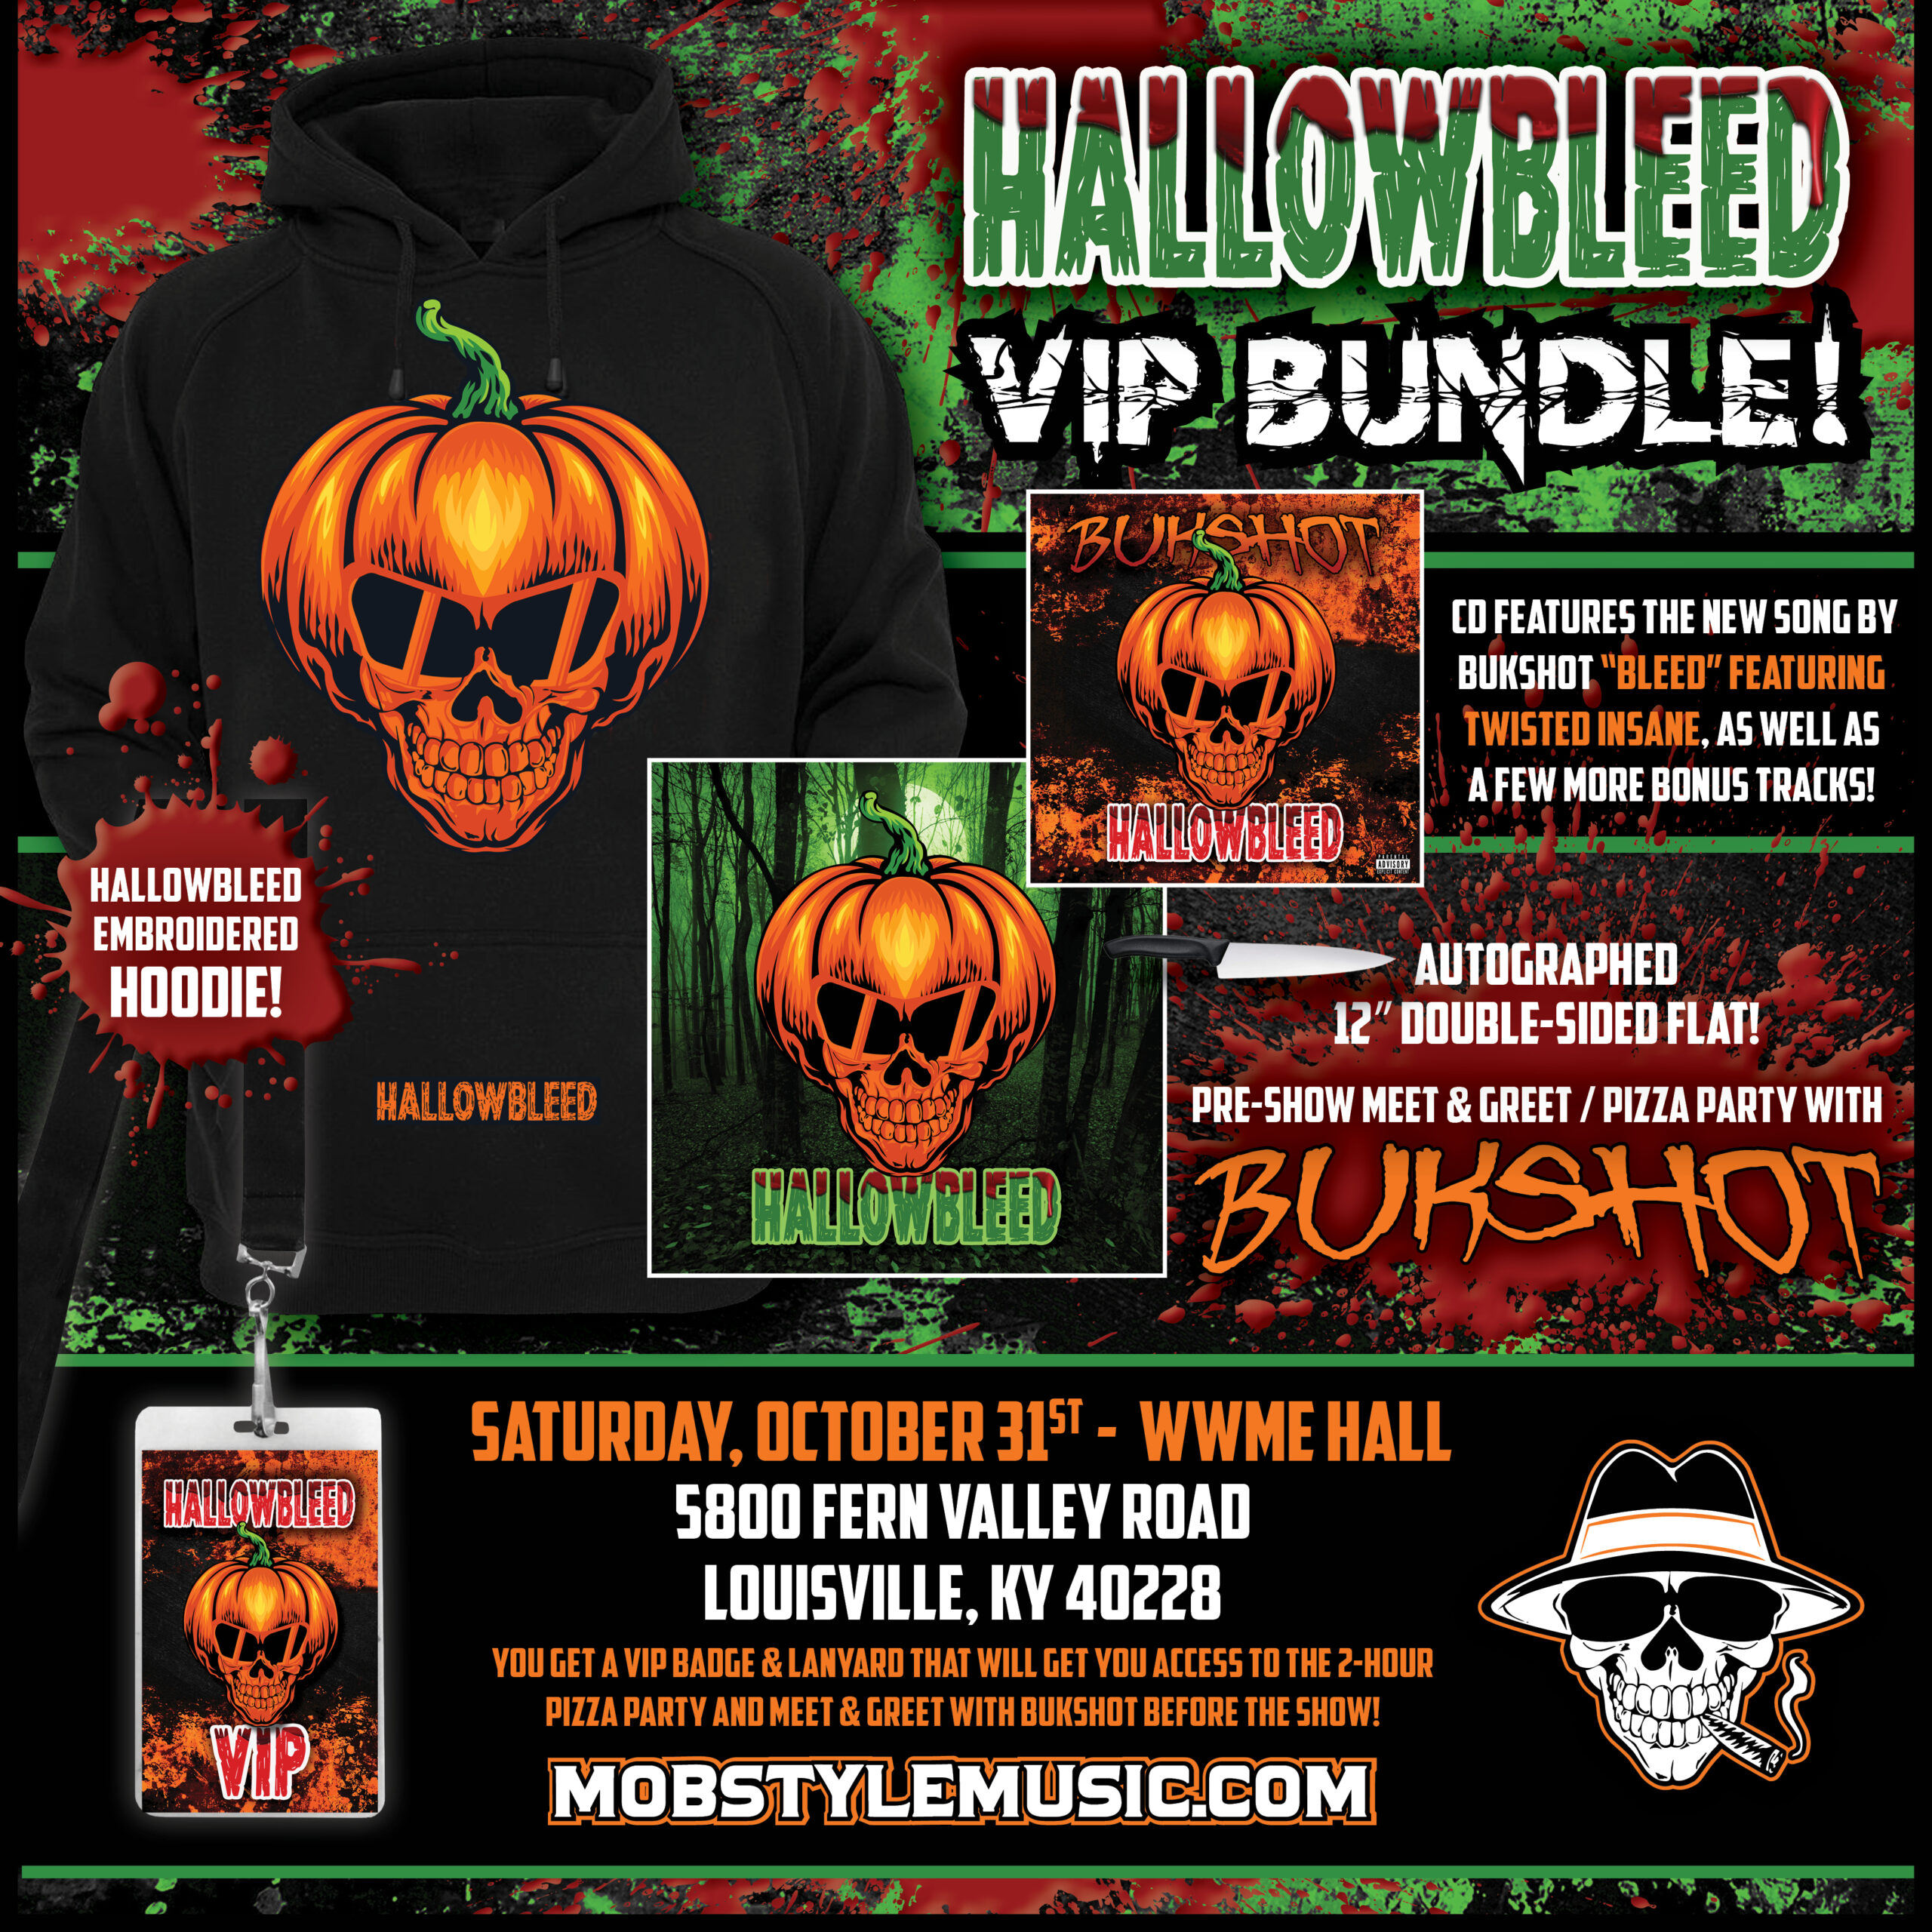 Hallowbleed VIP Bundle! All NEW Hallowbleed Hoodie, CD, 12″ Flat, VIP Pass & Lanyard, And Pizza Party Meet & Greet With Bukshot!